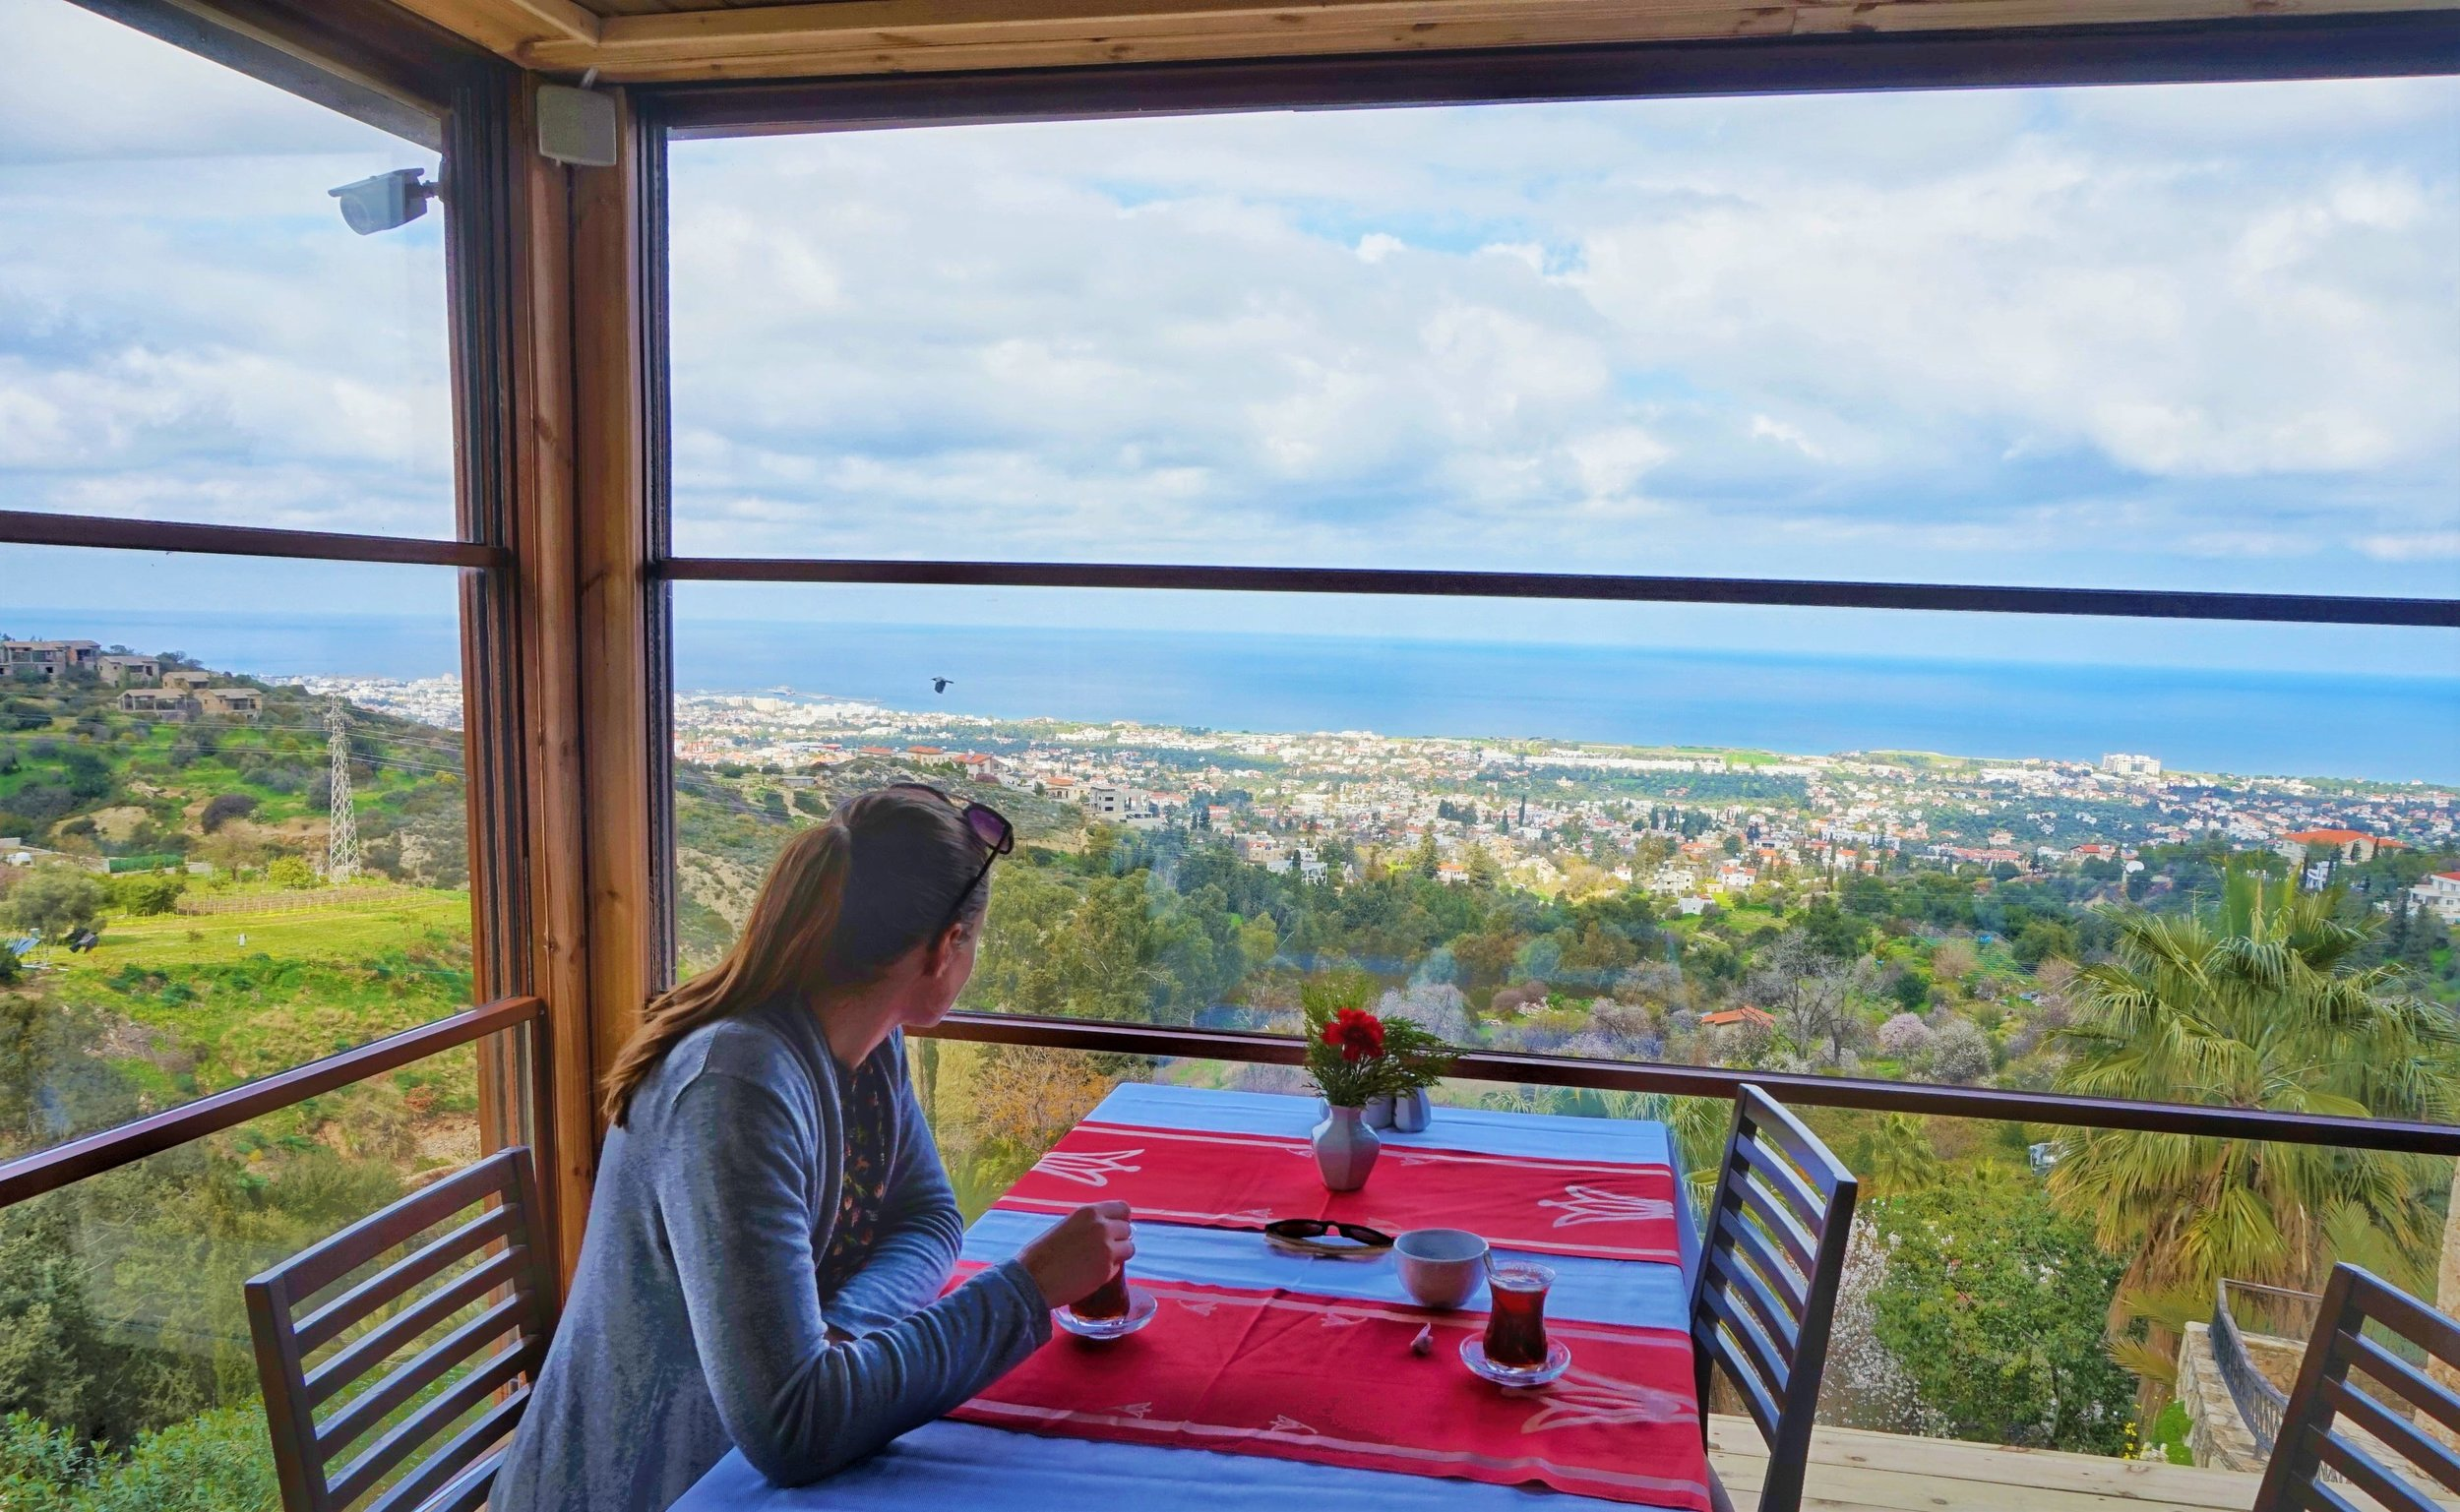 Can't-miss the views over northern Cyprus during your north Cyprus road trip.